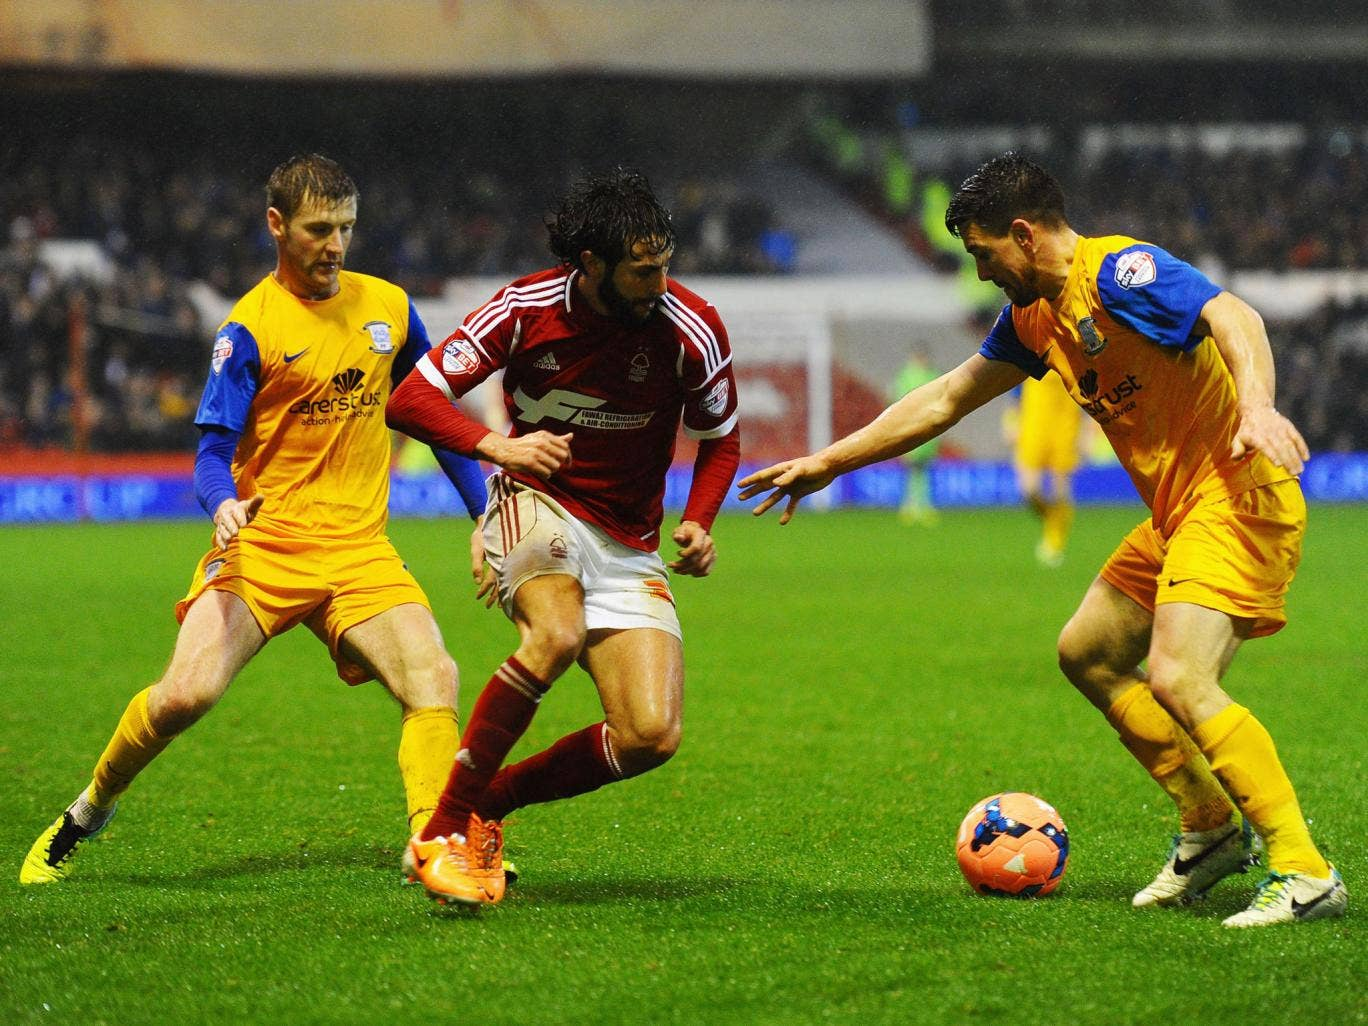 Djamel Abdoun of Nottingham Forest, centre, takes on Paul Gallagher, left, and David Buchanan of Preston North End